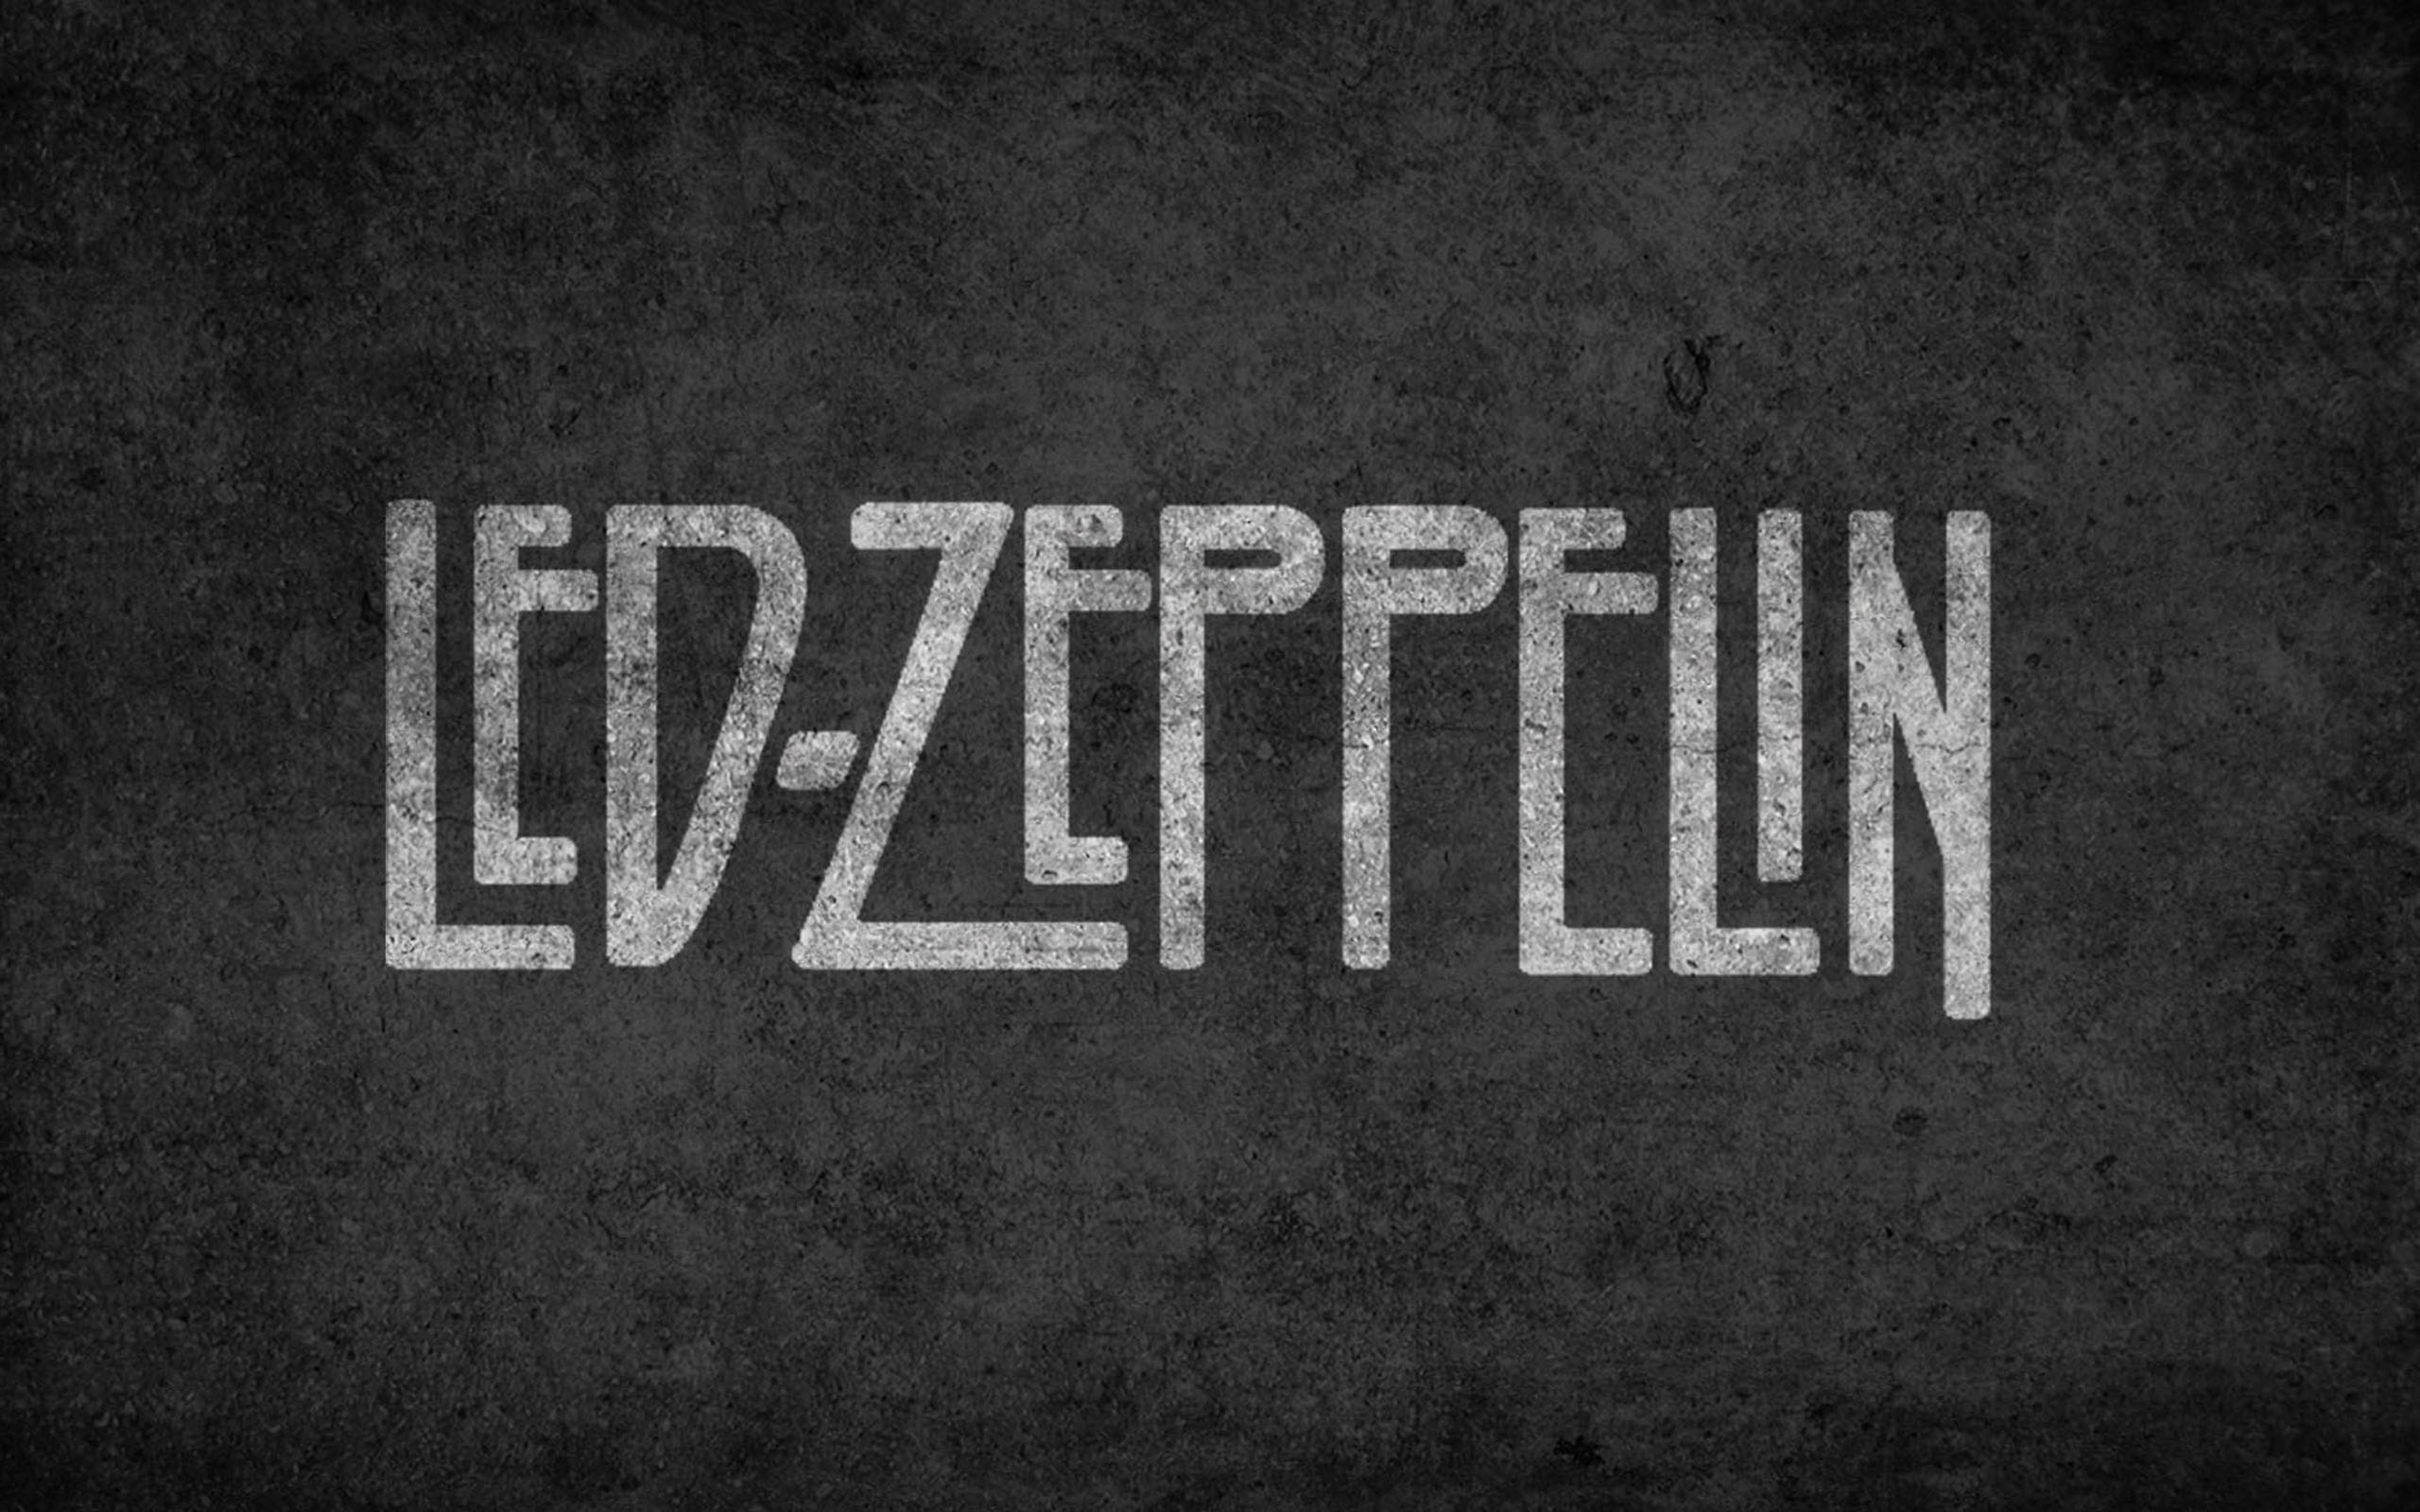 Must see Wallpaper Music Logo - led-zeppelin-logo-rock-music-1  You Should Have_319253.jpg